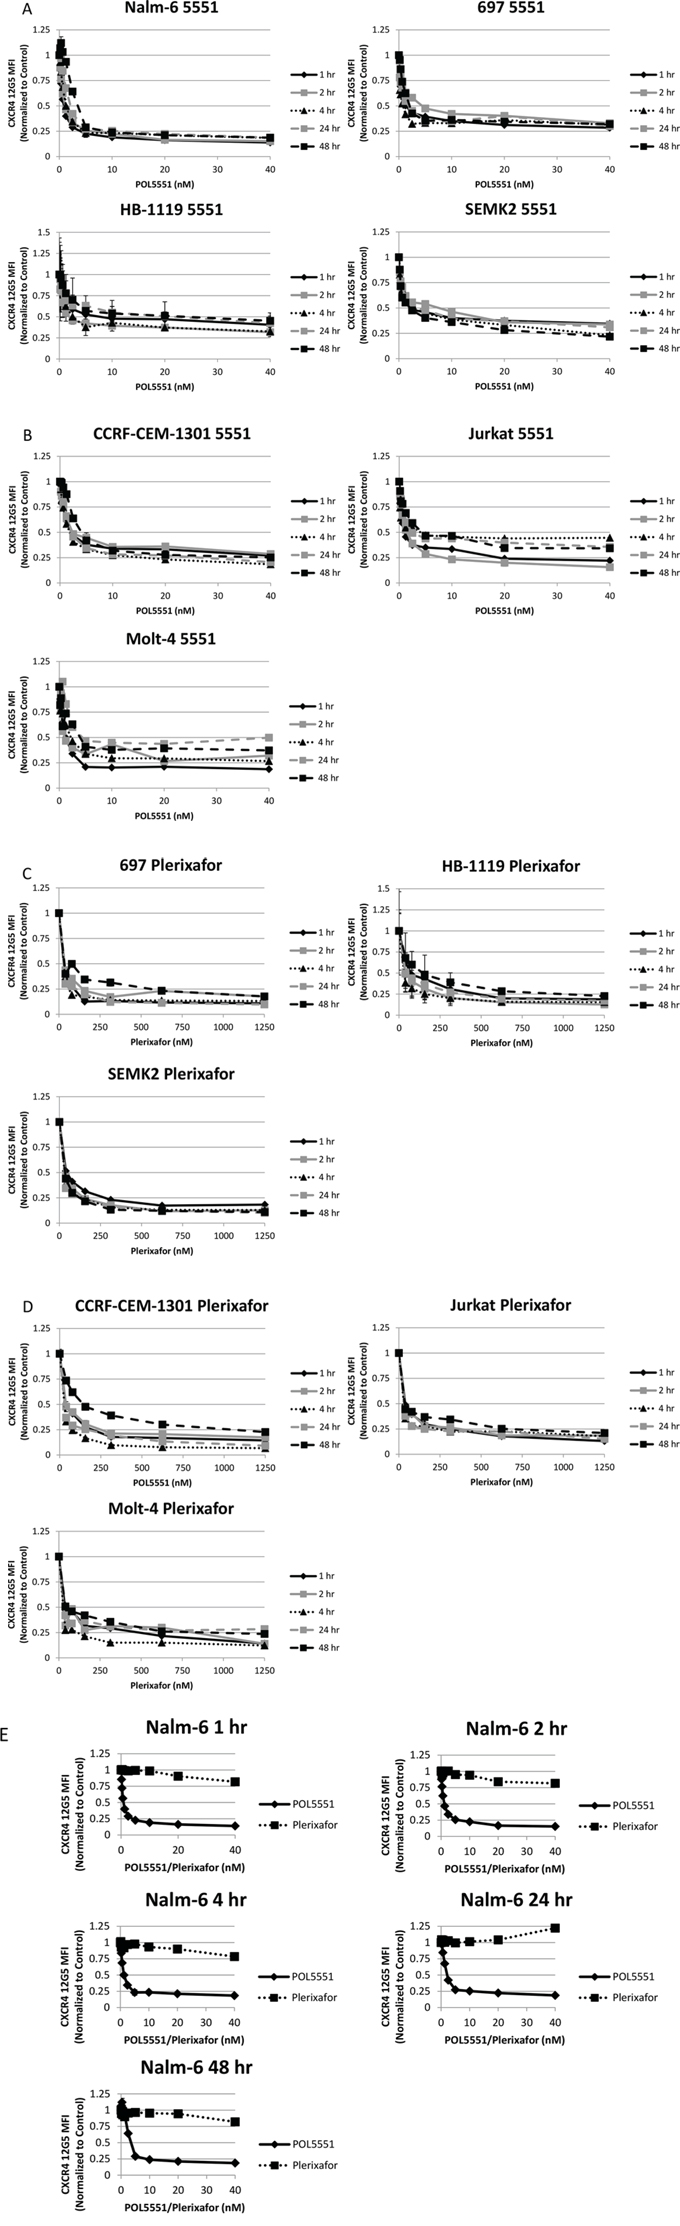 POL5551 potently inhibits binding of the 12G5 anti-CXCR4 antibody in ALL cell lines more effectively than plerixafor.